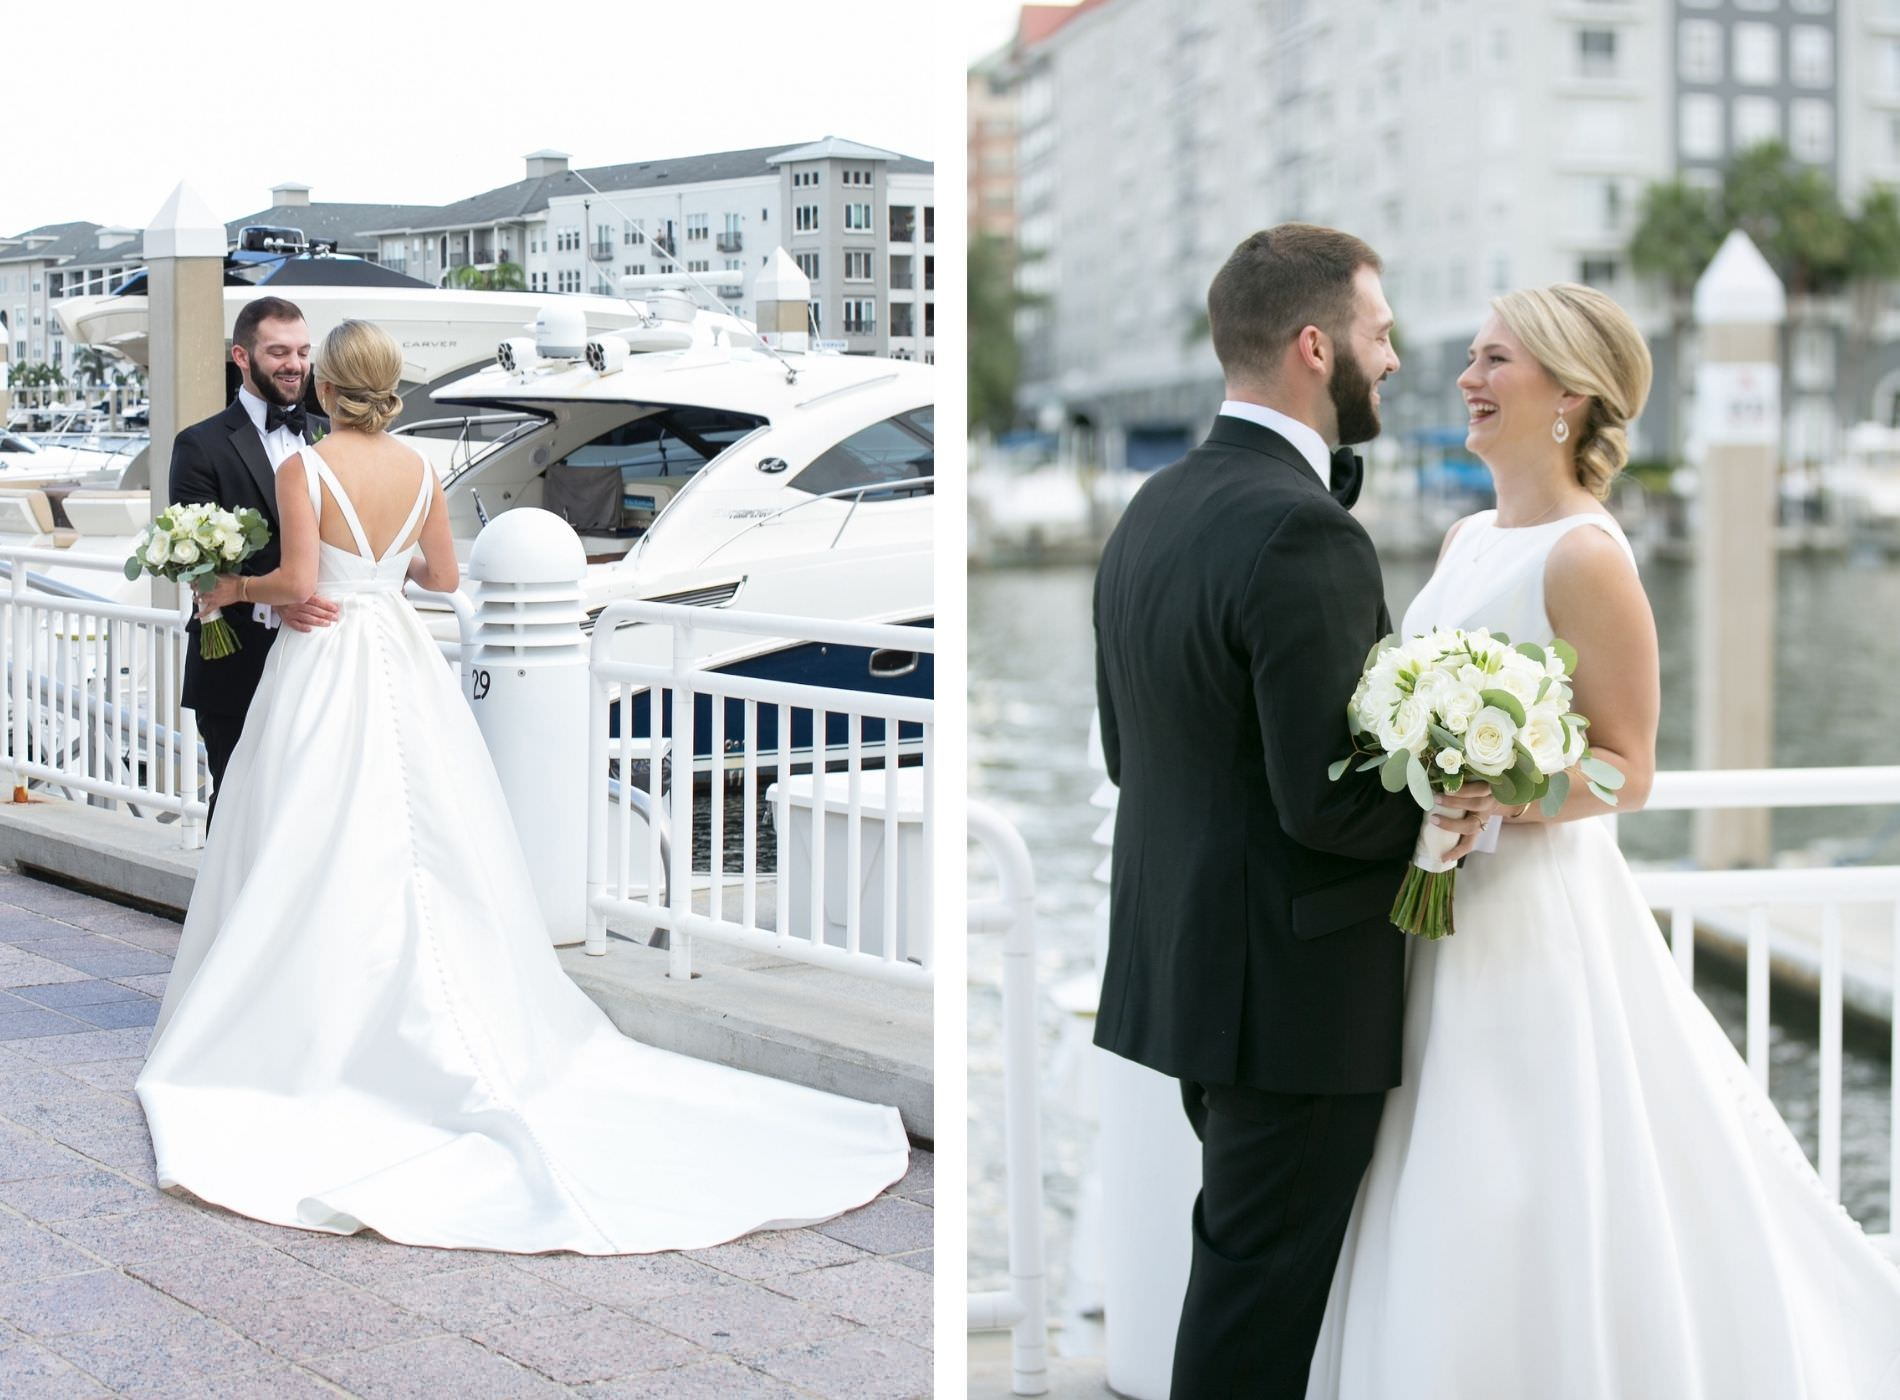 Bride and Groom First Look in Downtown Tampa Marina Riverwalk Marina | Bateau Neck Mikado Satin Martina Liana Simple Elegant Wedding Dress with Buttons Down Back | Groom in Classic Black Tux | Neutral White Rose and Greenery Bouquet | Carrie Wildes Photography